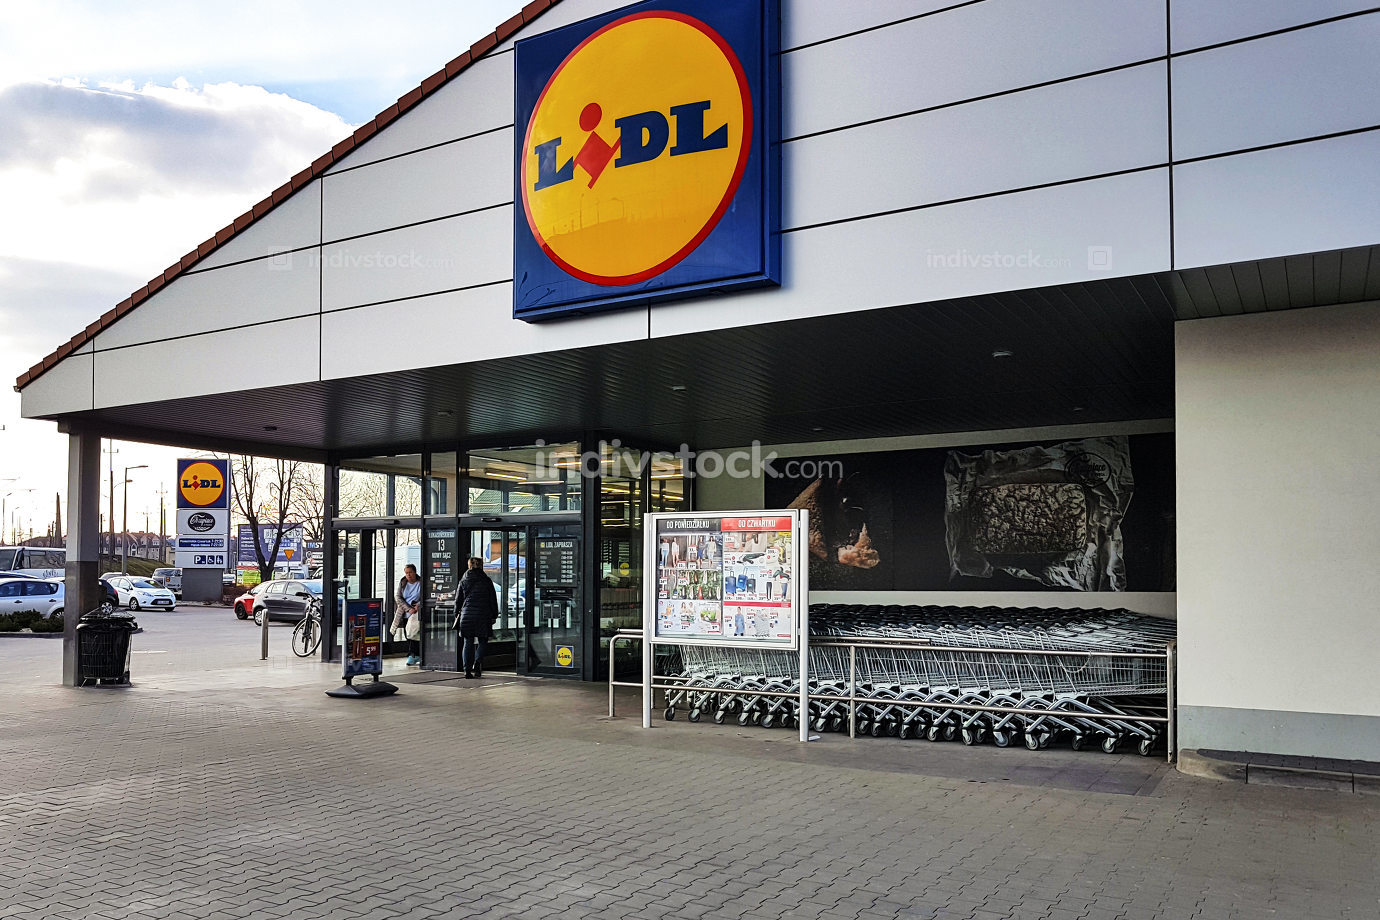 Entrance of the Lidl Store